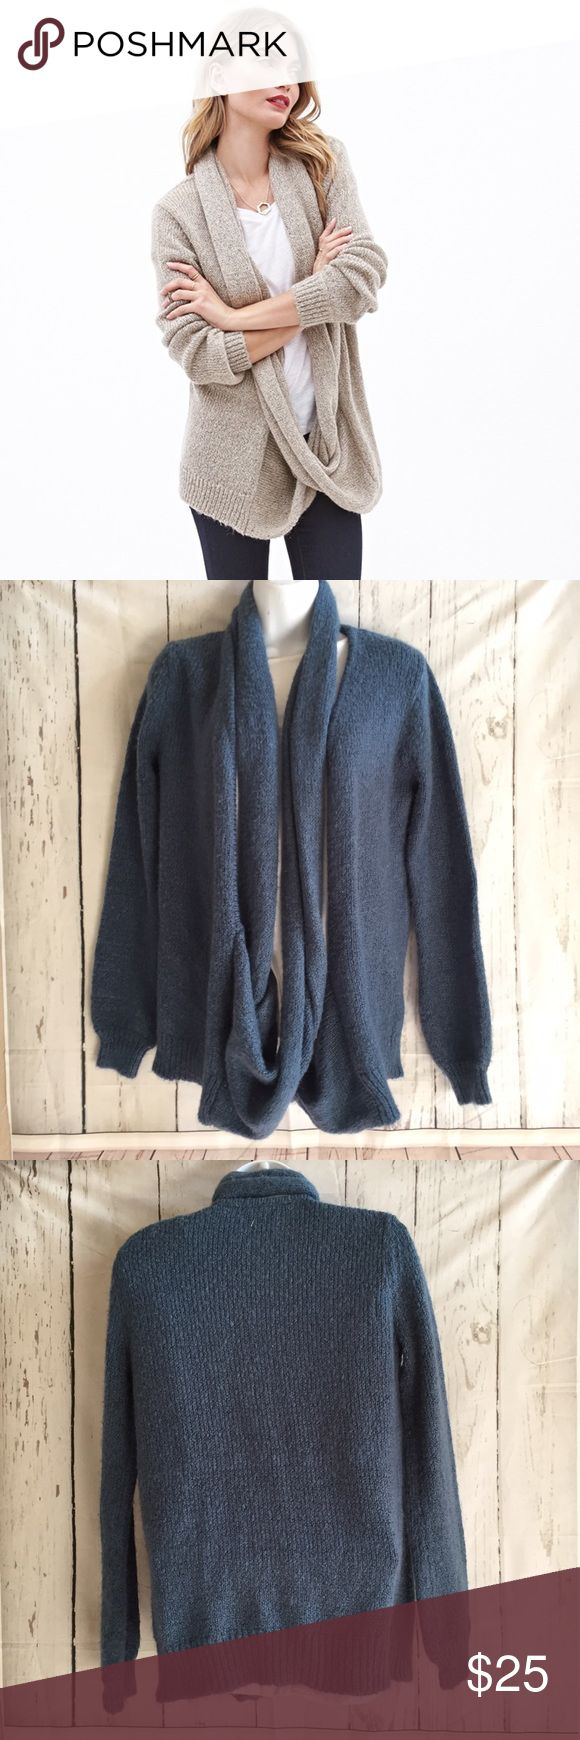 Draped Teal Scarf Cardigan First photo is a stock photo only. Teal sweater is the actual item for sale. Size XS. Brand is Forever 21 Contemporary. Acrylic, polyester and Nylon Polyamide blend. Very soft sweater. Scarf drape is not detachable. Forever 21 Sweaters Cardigans